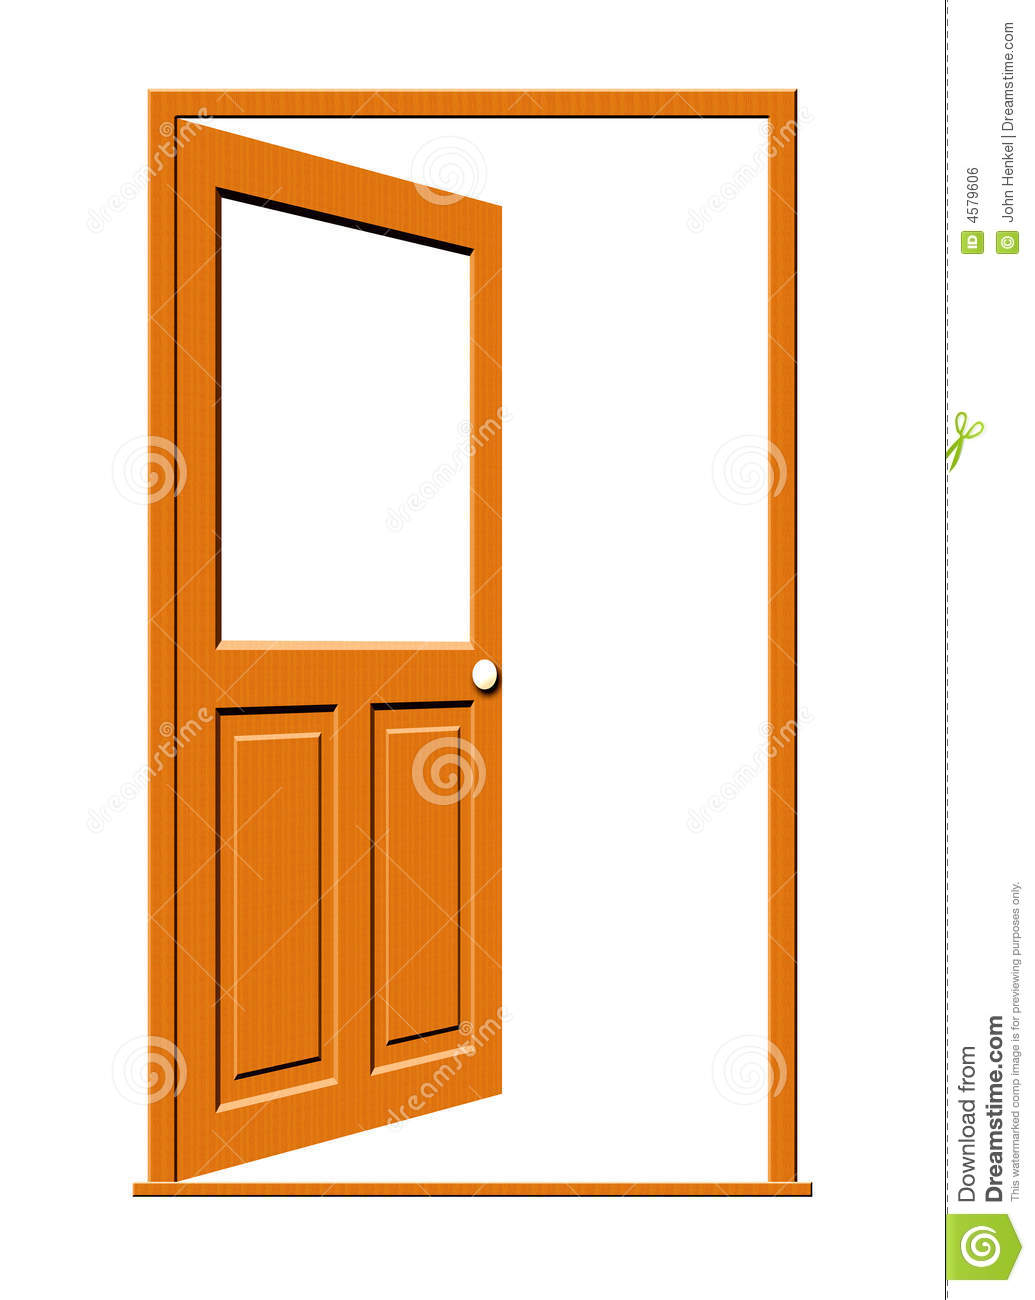 Open Door Clipart Open Wood Door Blank Window 4579606 Jpg